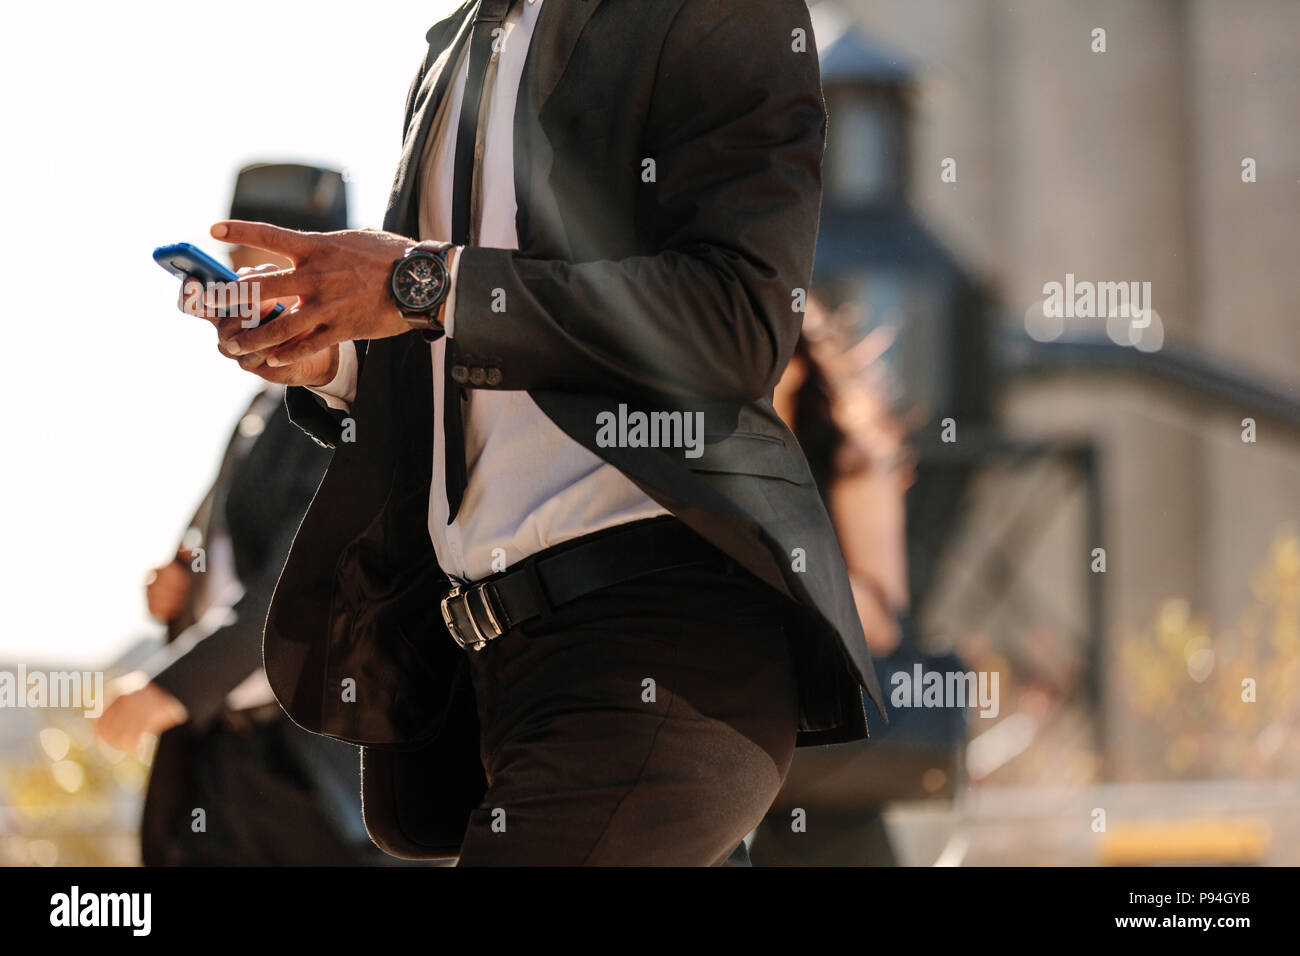 Mid section of a businessman using mobile phone while walking on city street. People commuting to office in the morning busy with their mobile phones. - Stock Image